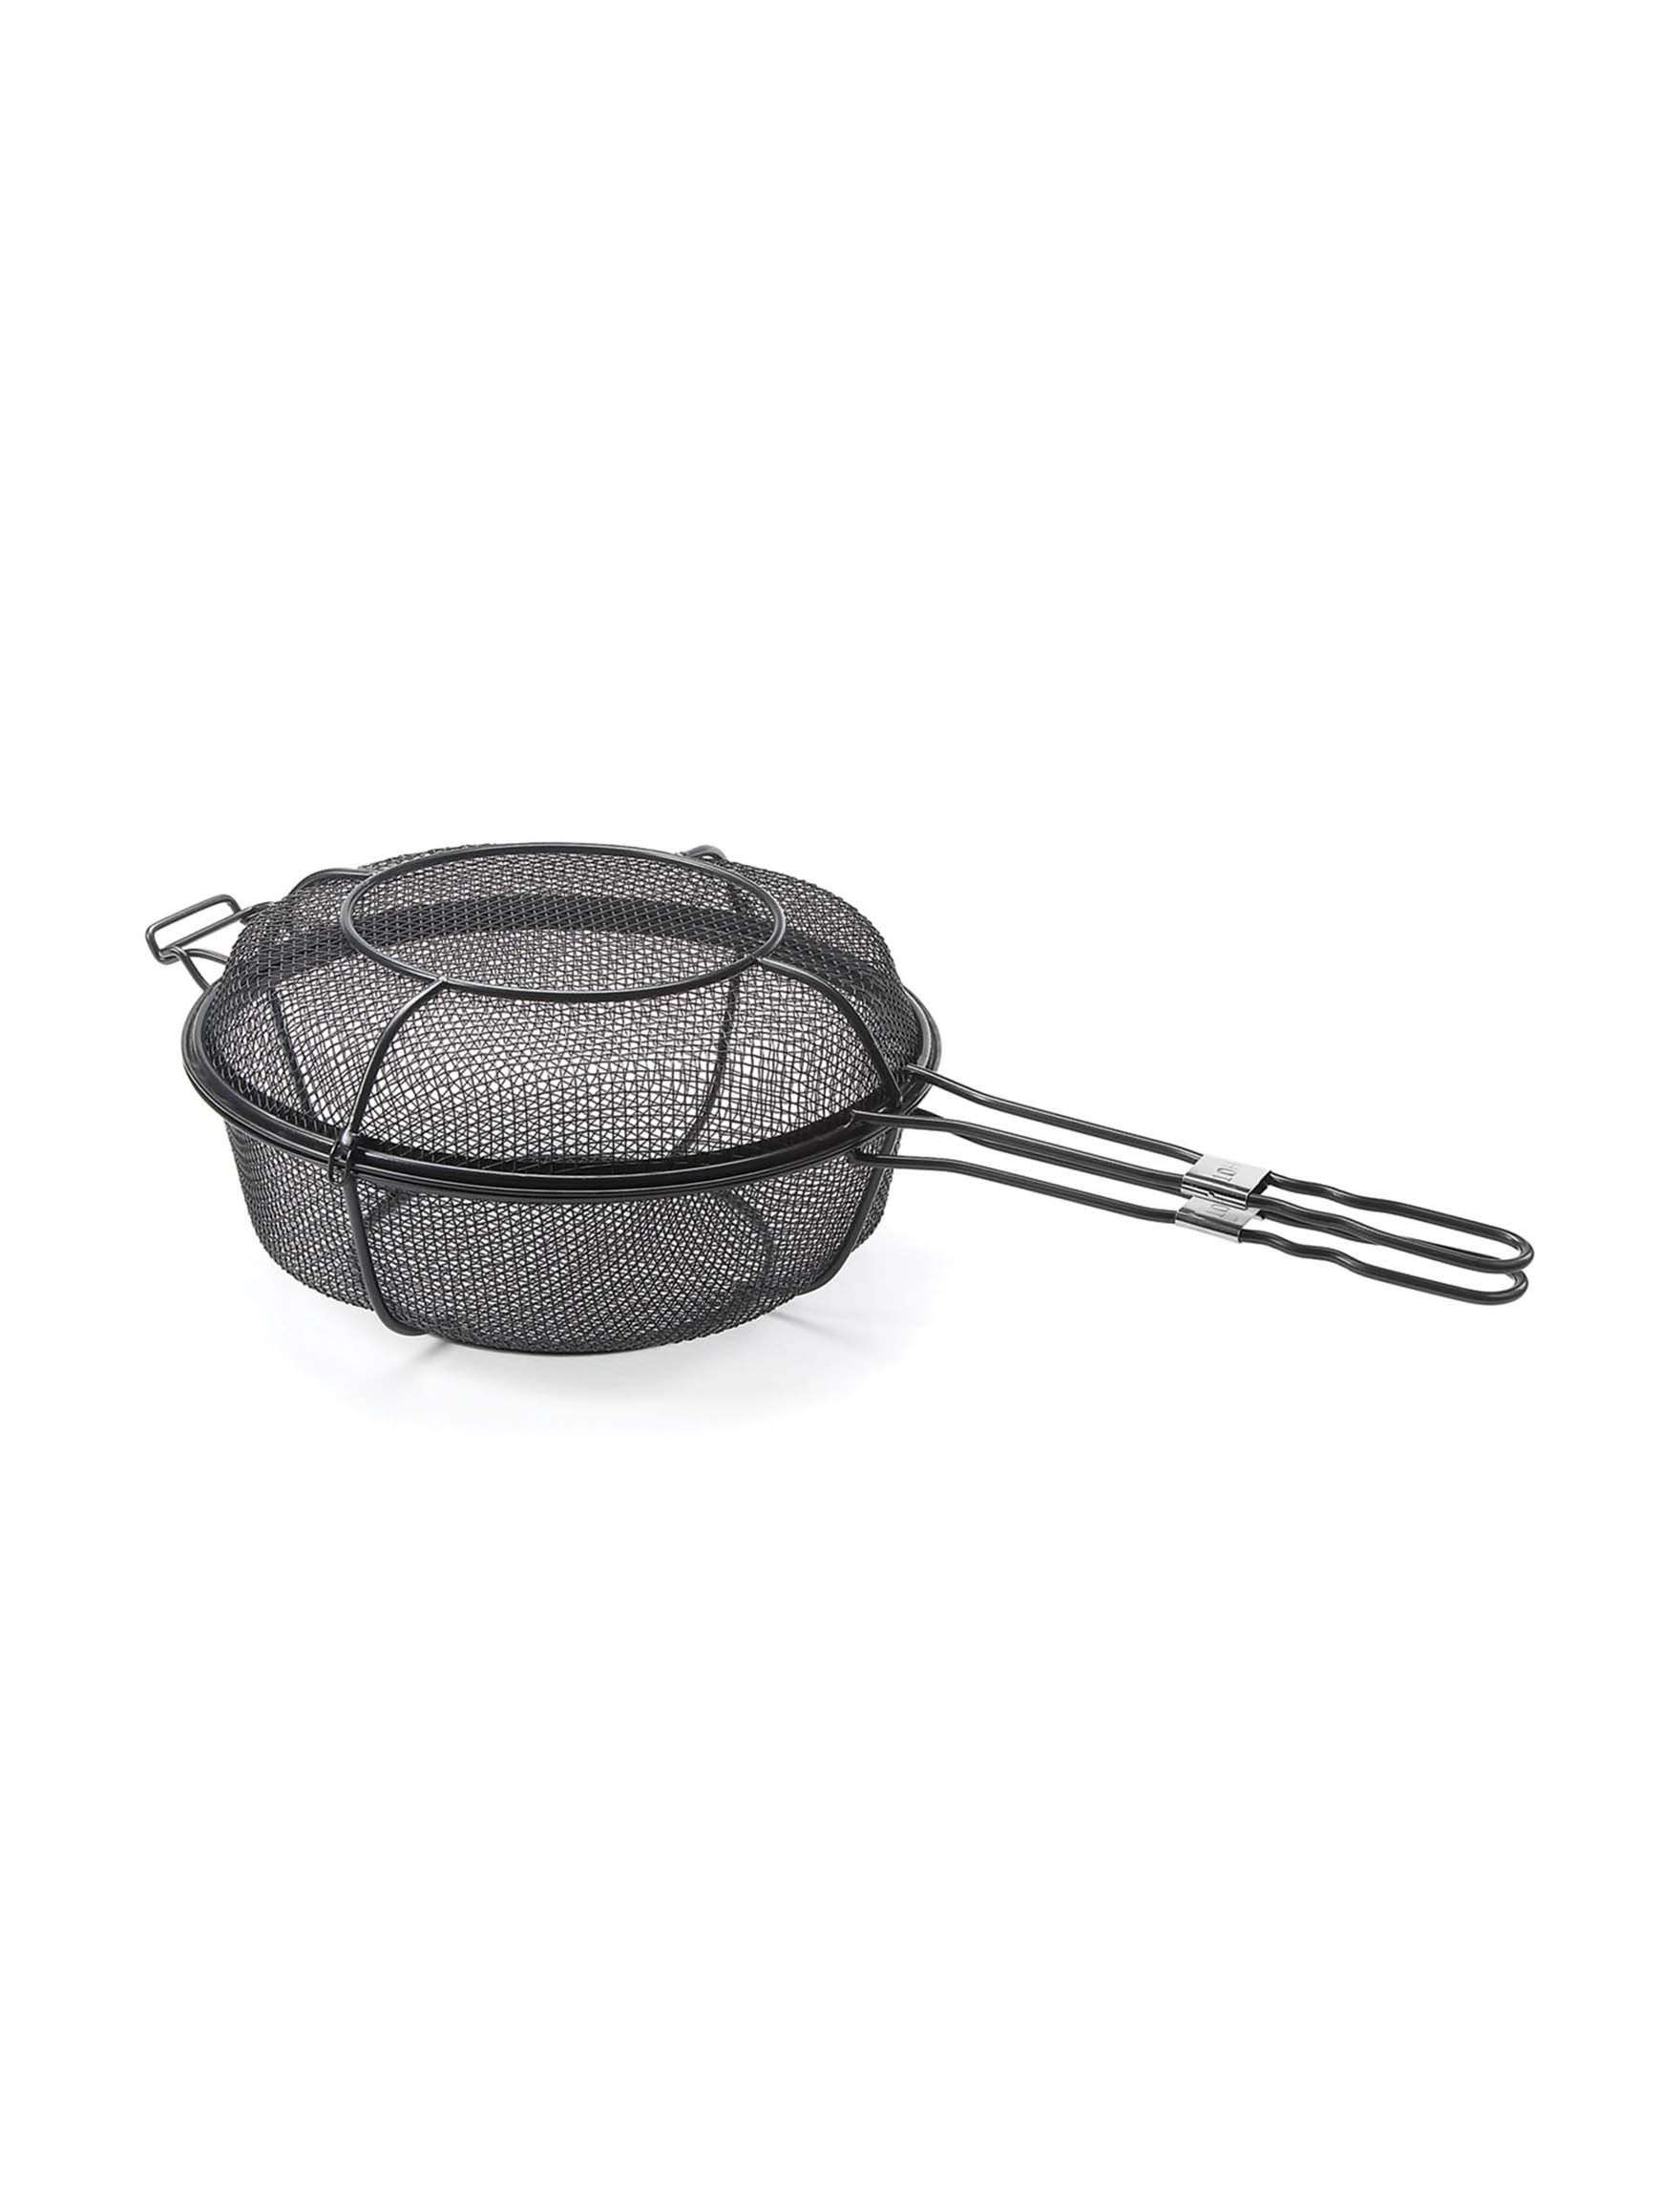 Outset Black Frying Pans & Skillets Cookware Grills & Grill Accessories